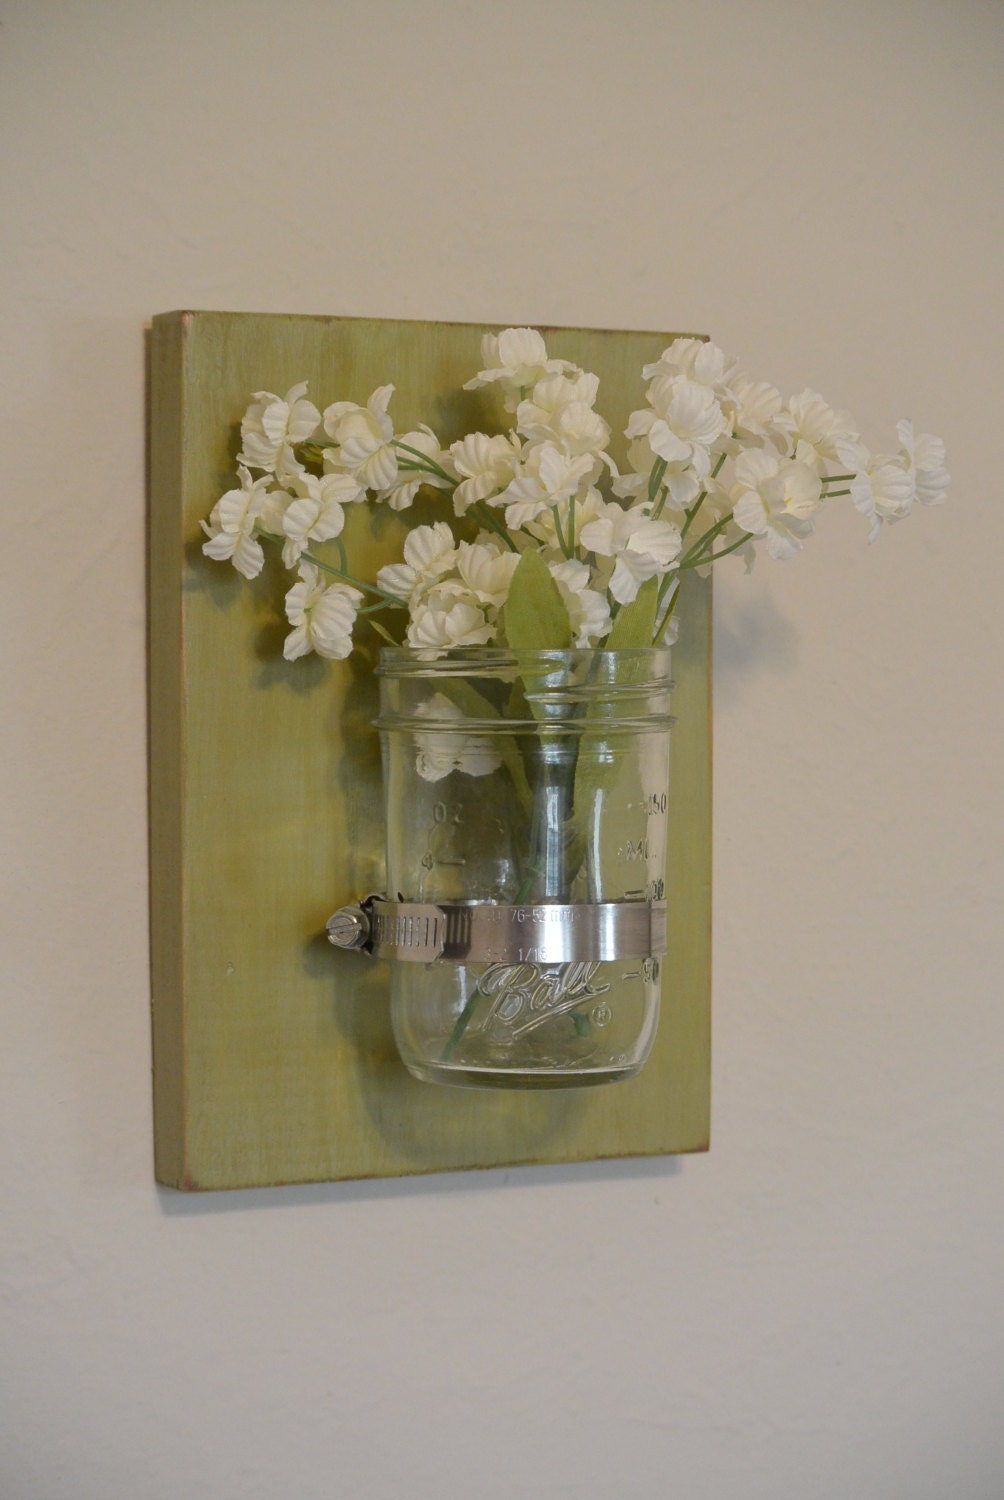 Mason Jar Wall Decor How To : Request a custom order and have something made just for you